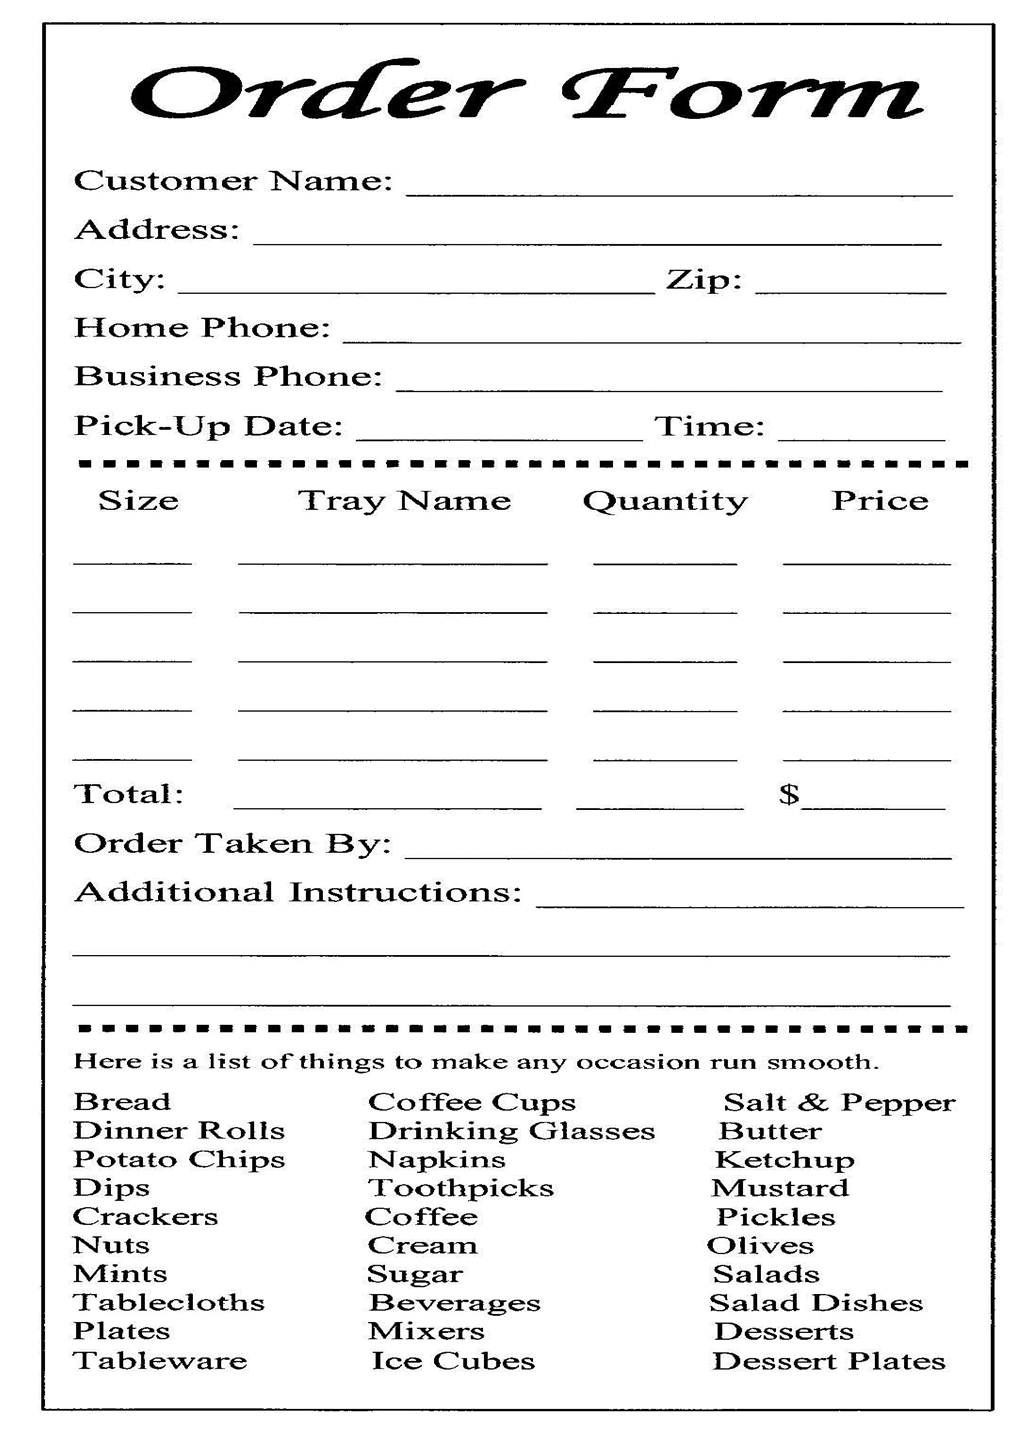 BAKERY ORDER FORM TEMPLATE FREE DOWNLOAD